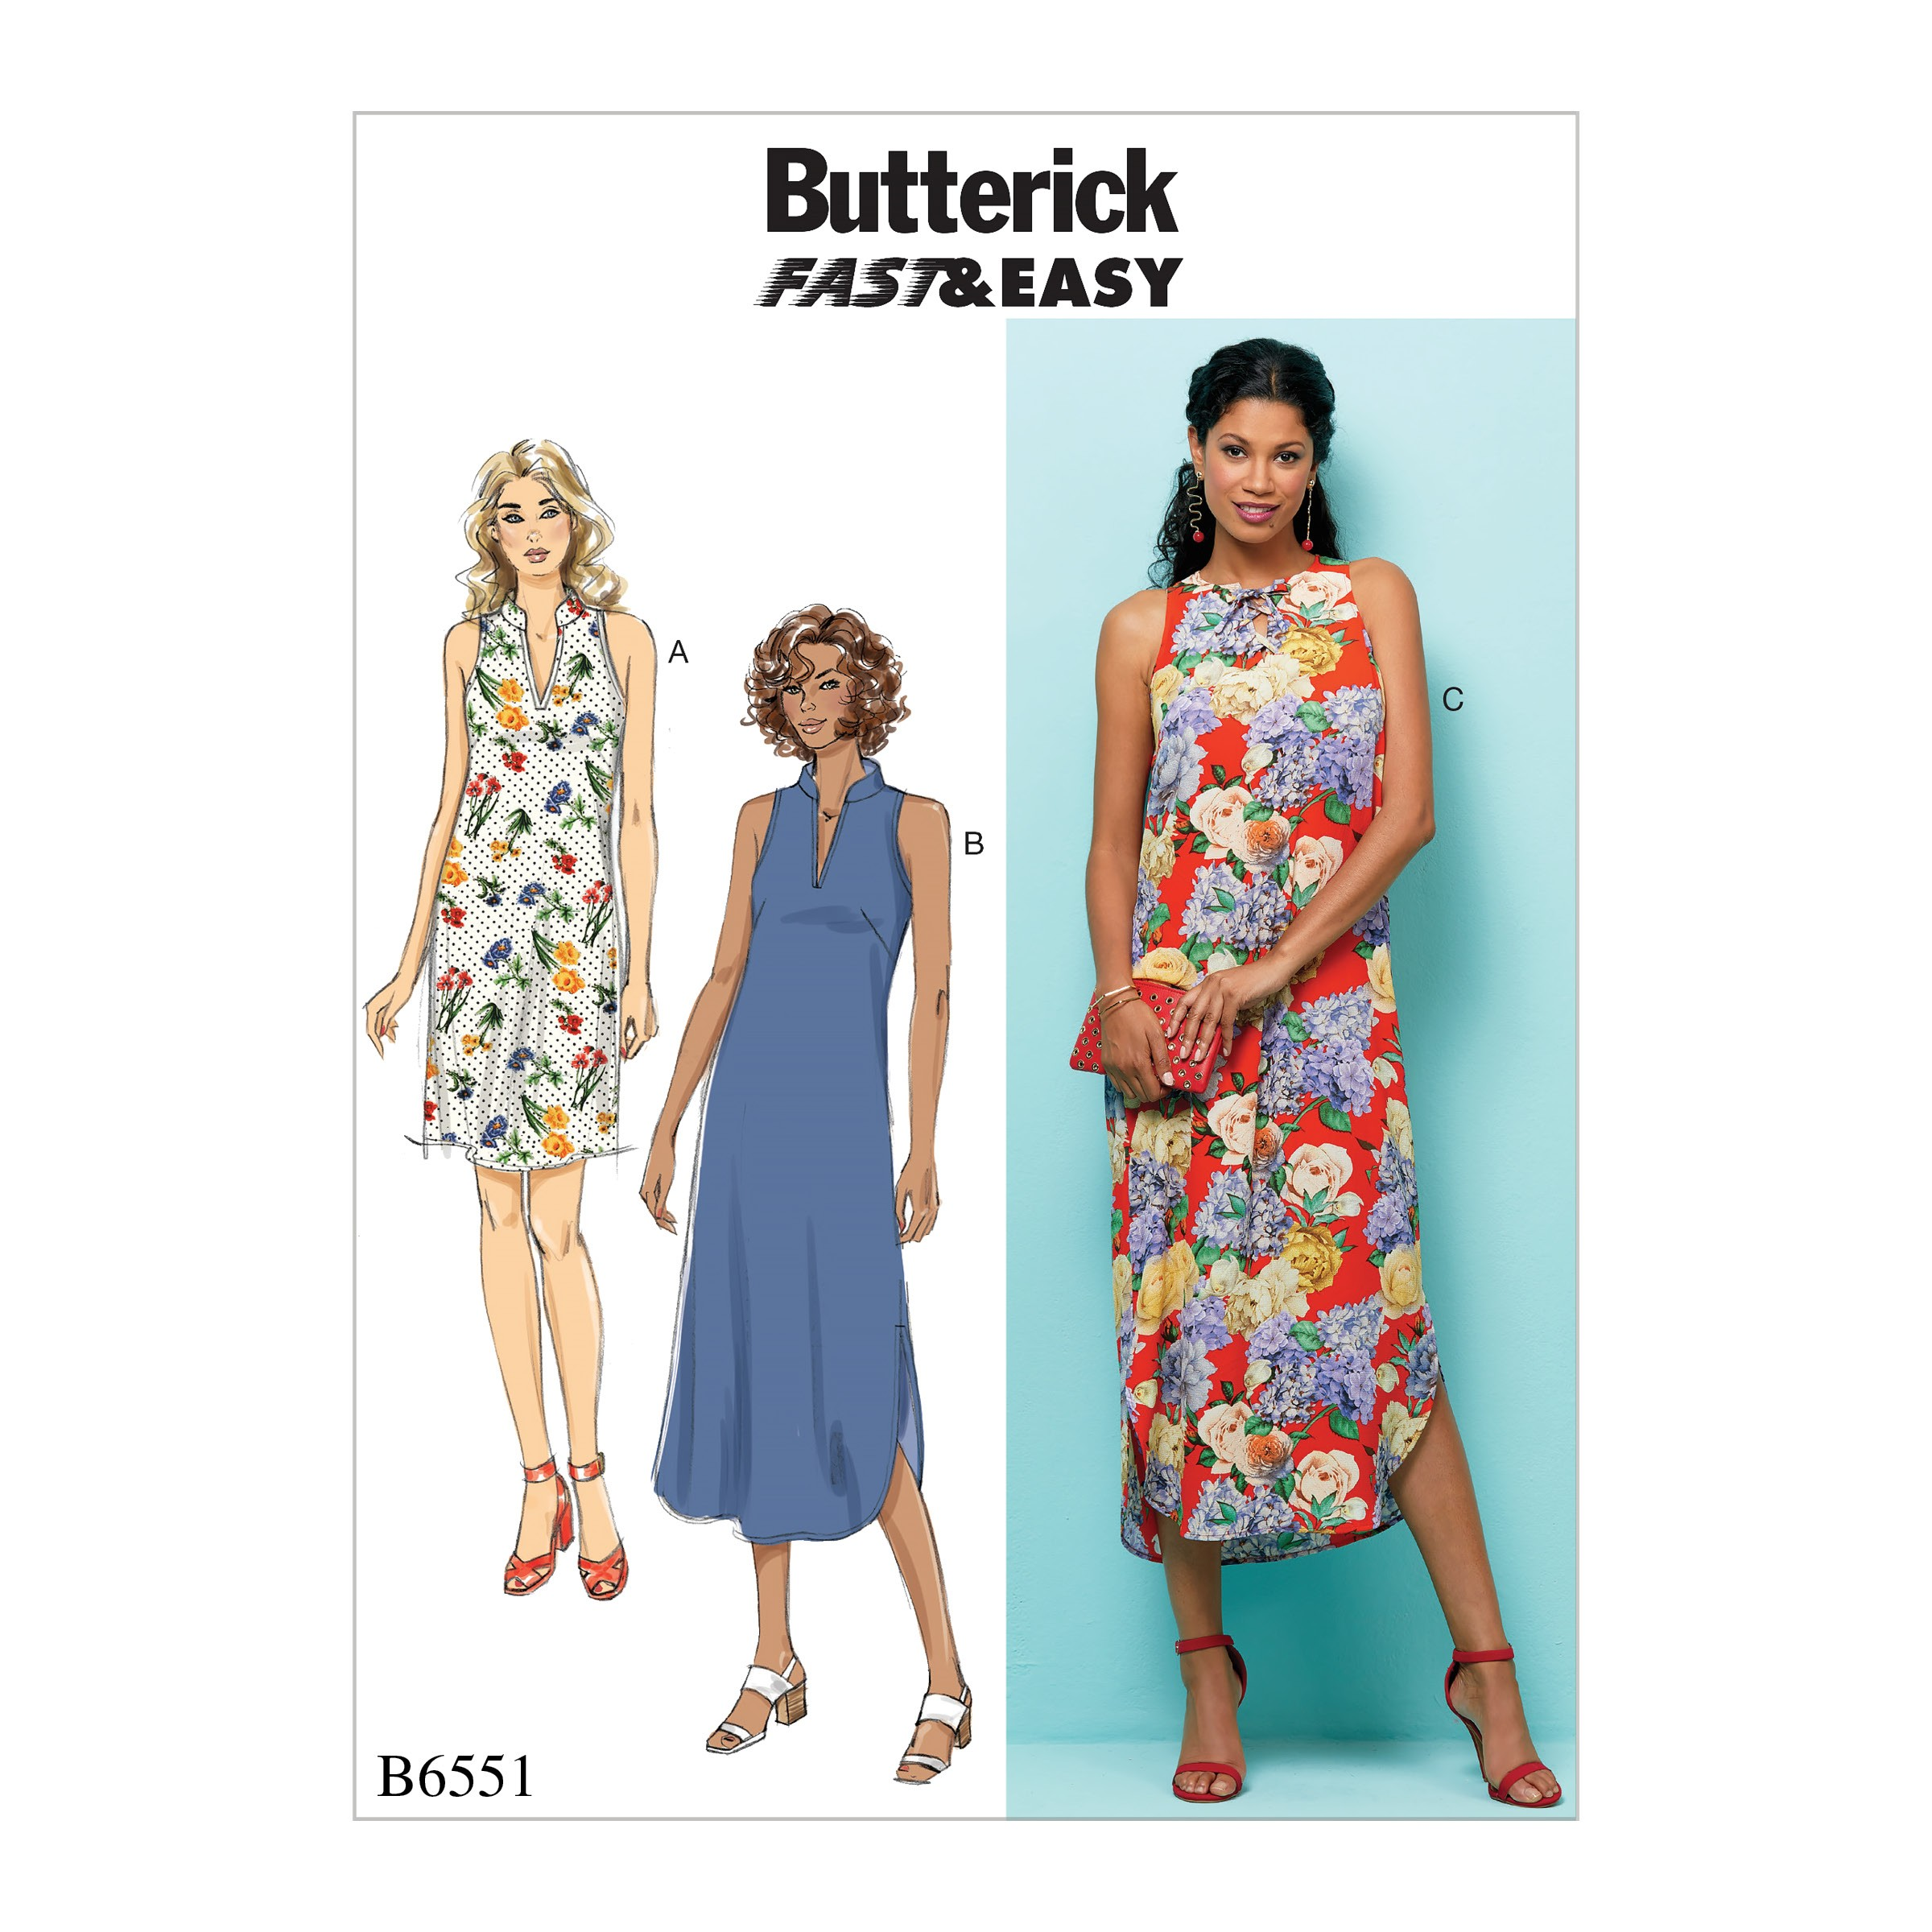 Butterick Sewing Pattern 6551 Misses' Dress